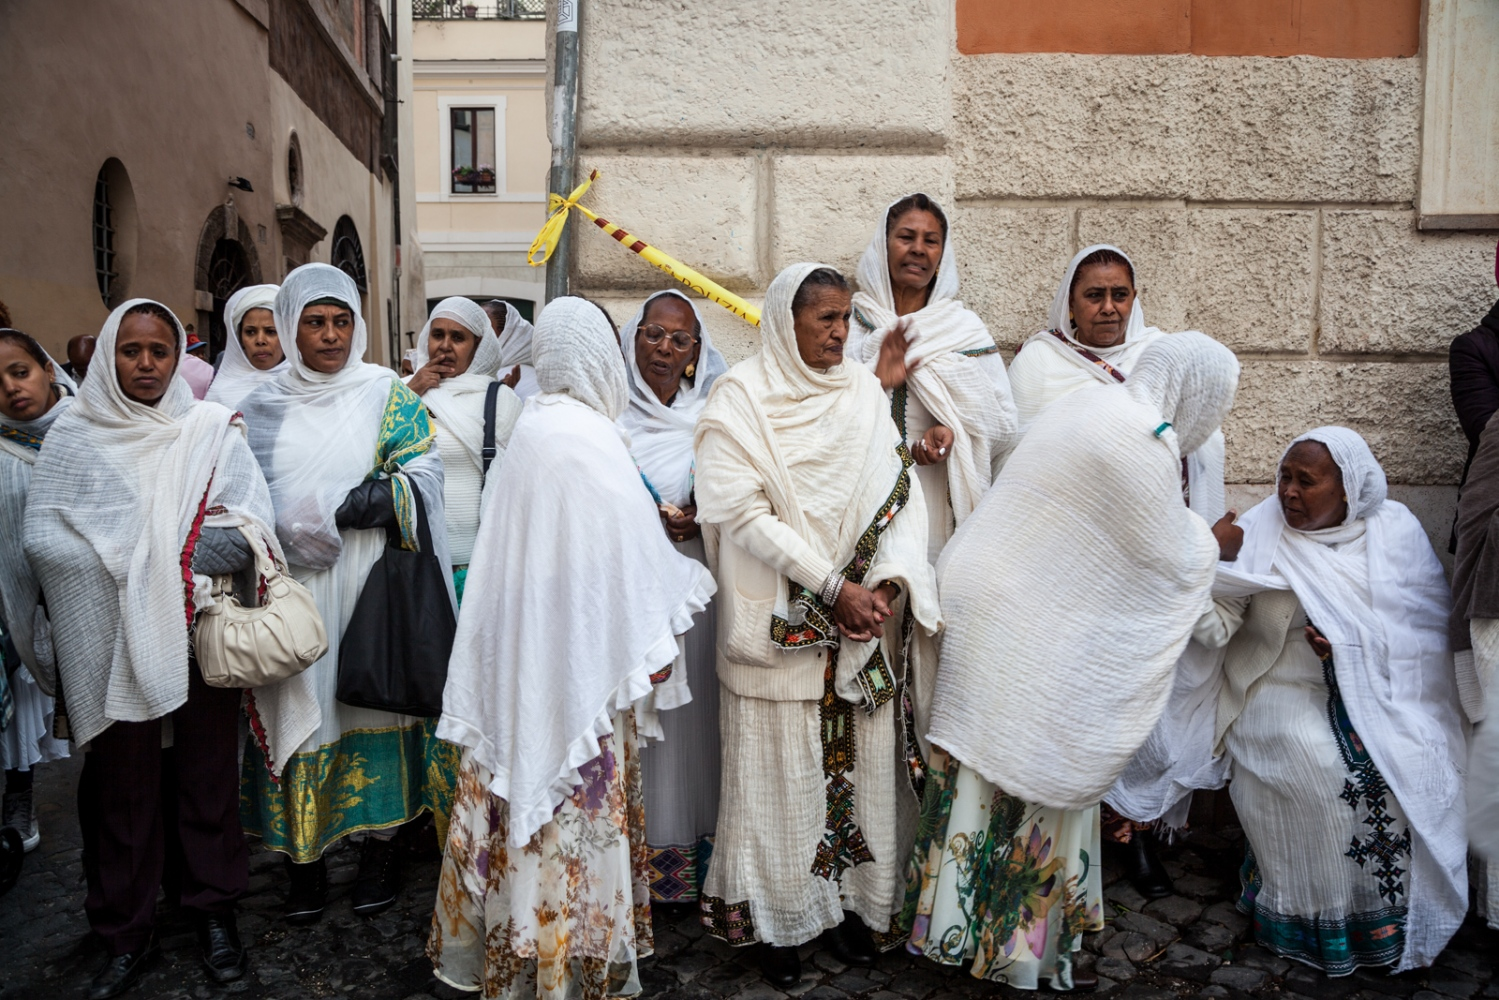 Nov. 23, 2014 - Members of the Eritrean Orthodox Tewahedo Church talk outside St. Michael's Church in one of the most iconic areas of downtown Rome, during the celebration for the patron saint of the community.